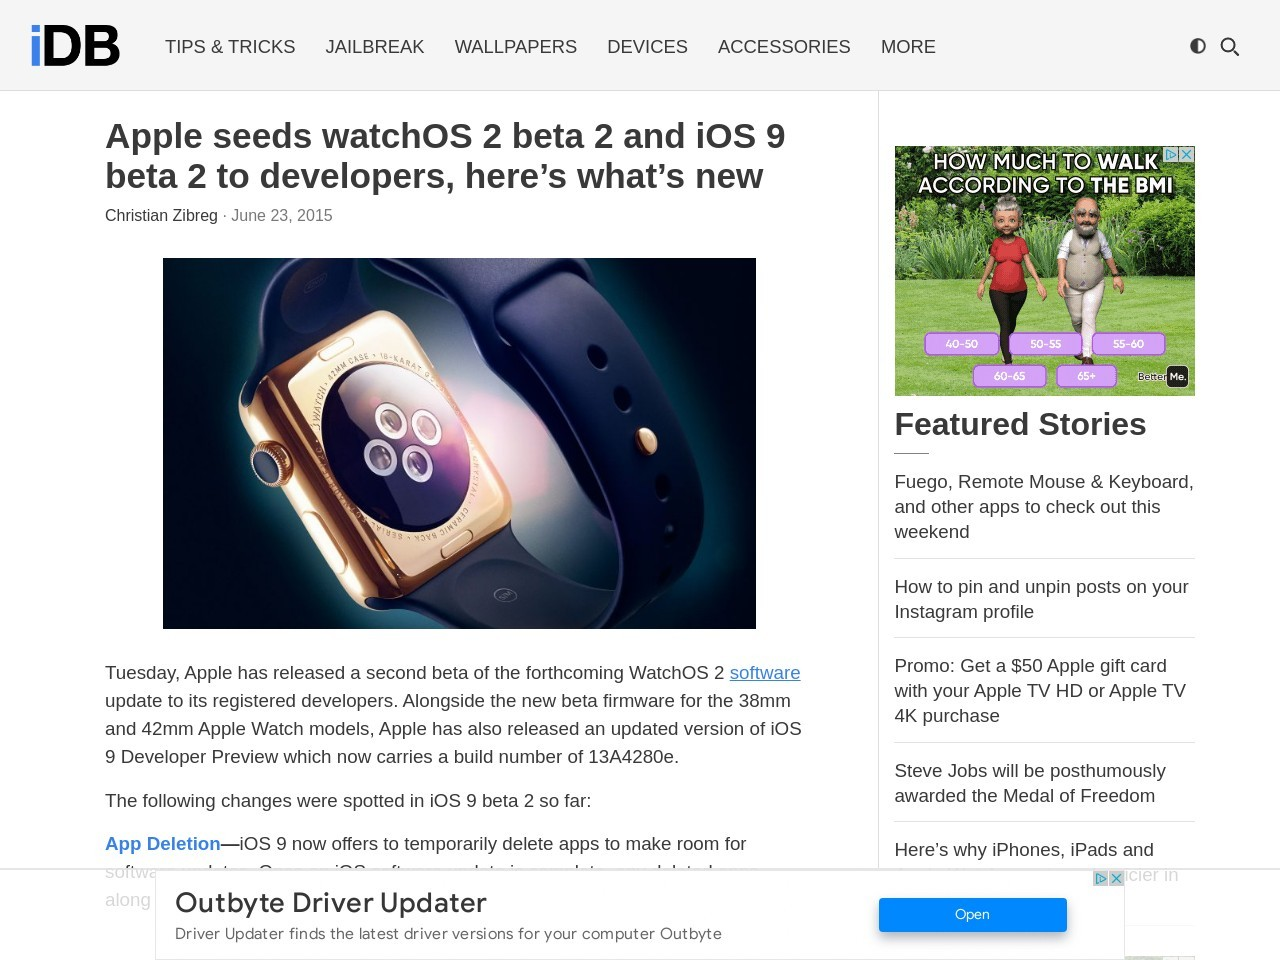 Apple seeds watchOS 2 beta 2 and iOS 9 beta 2 to developers